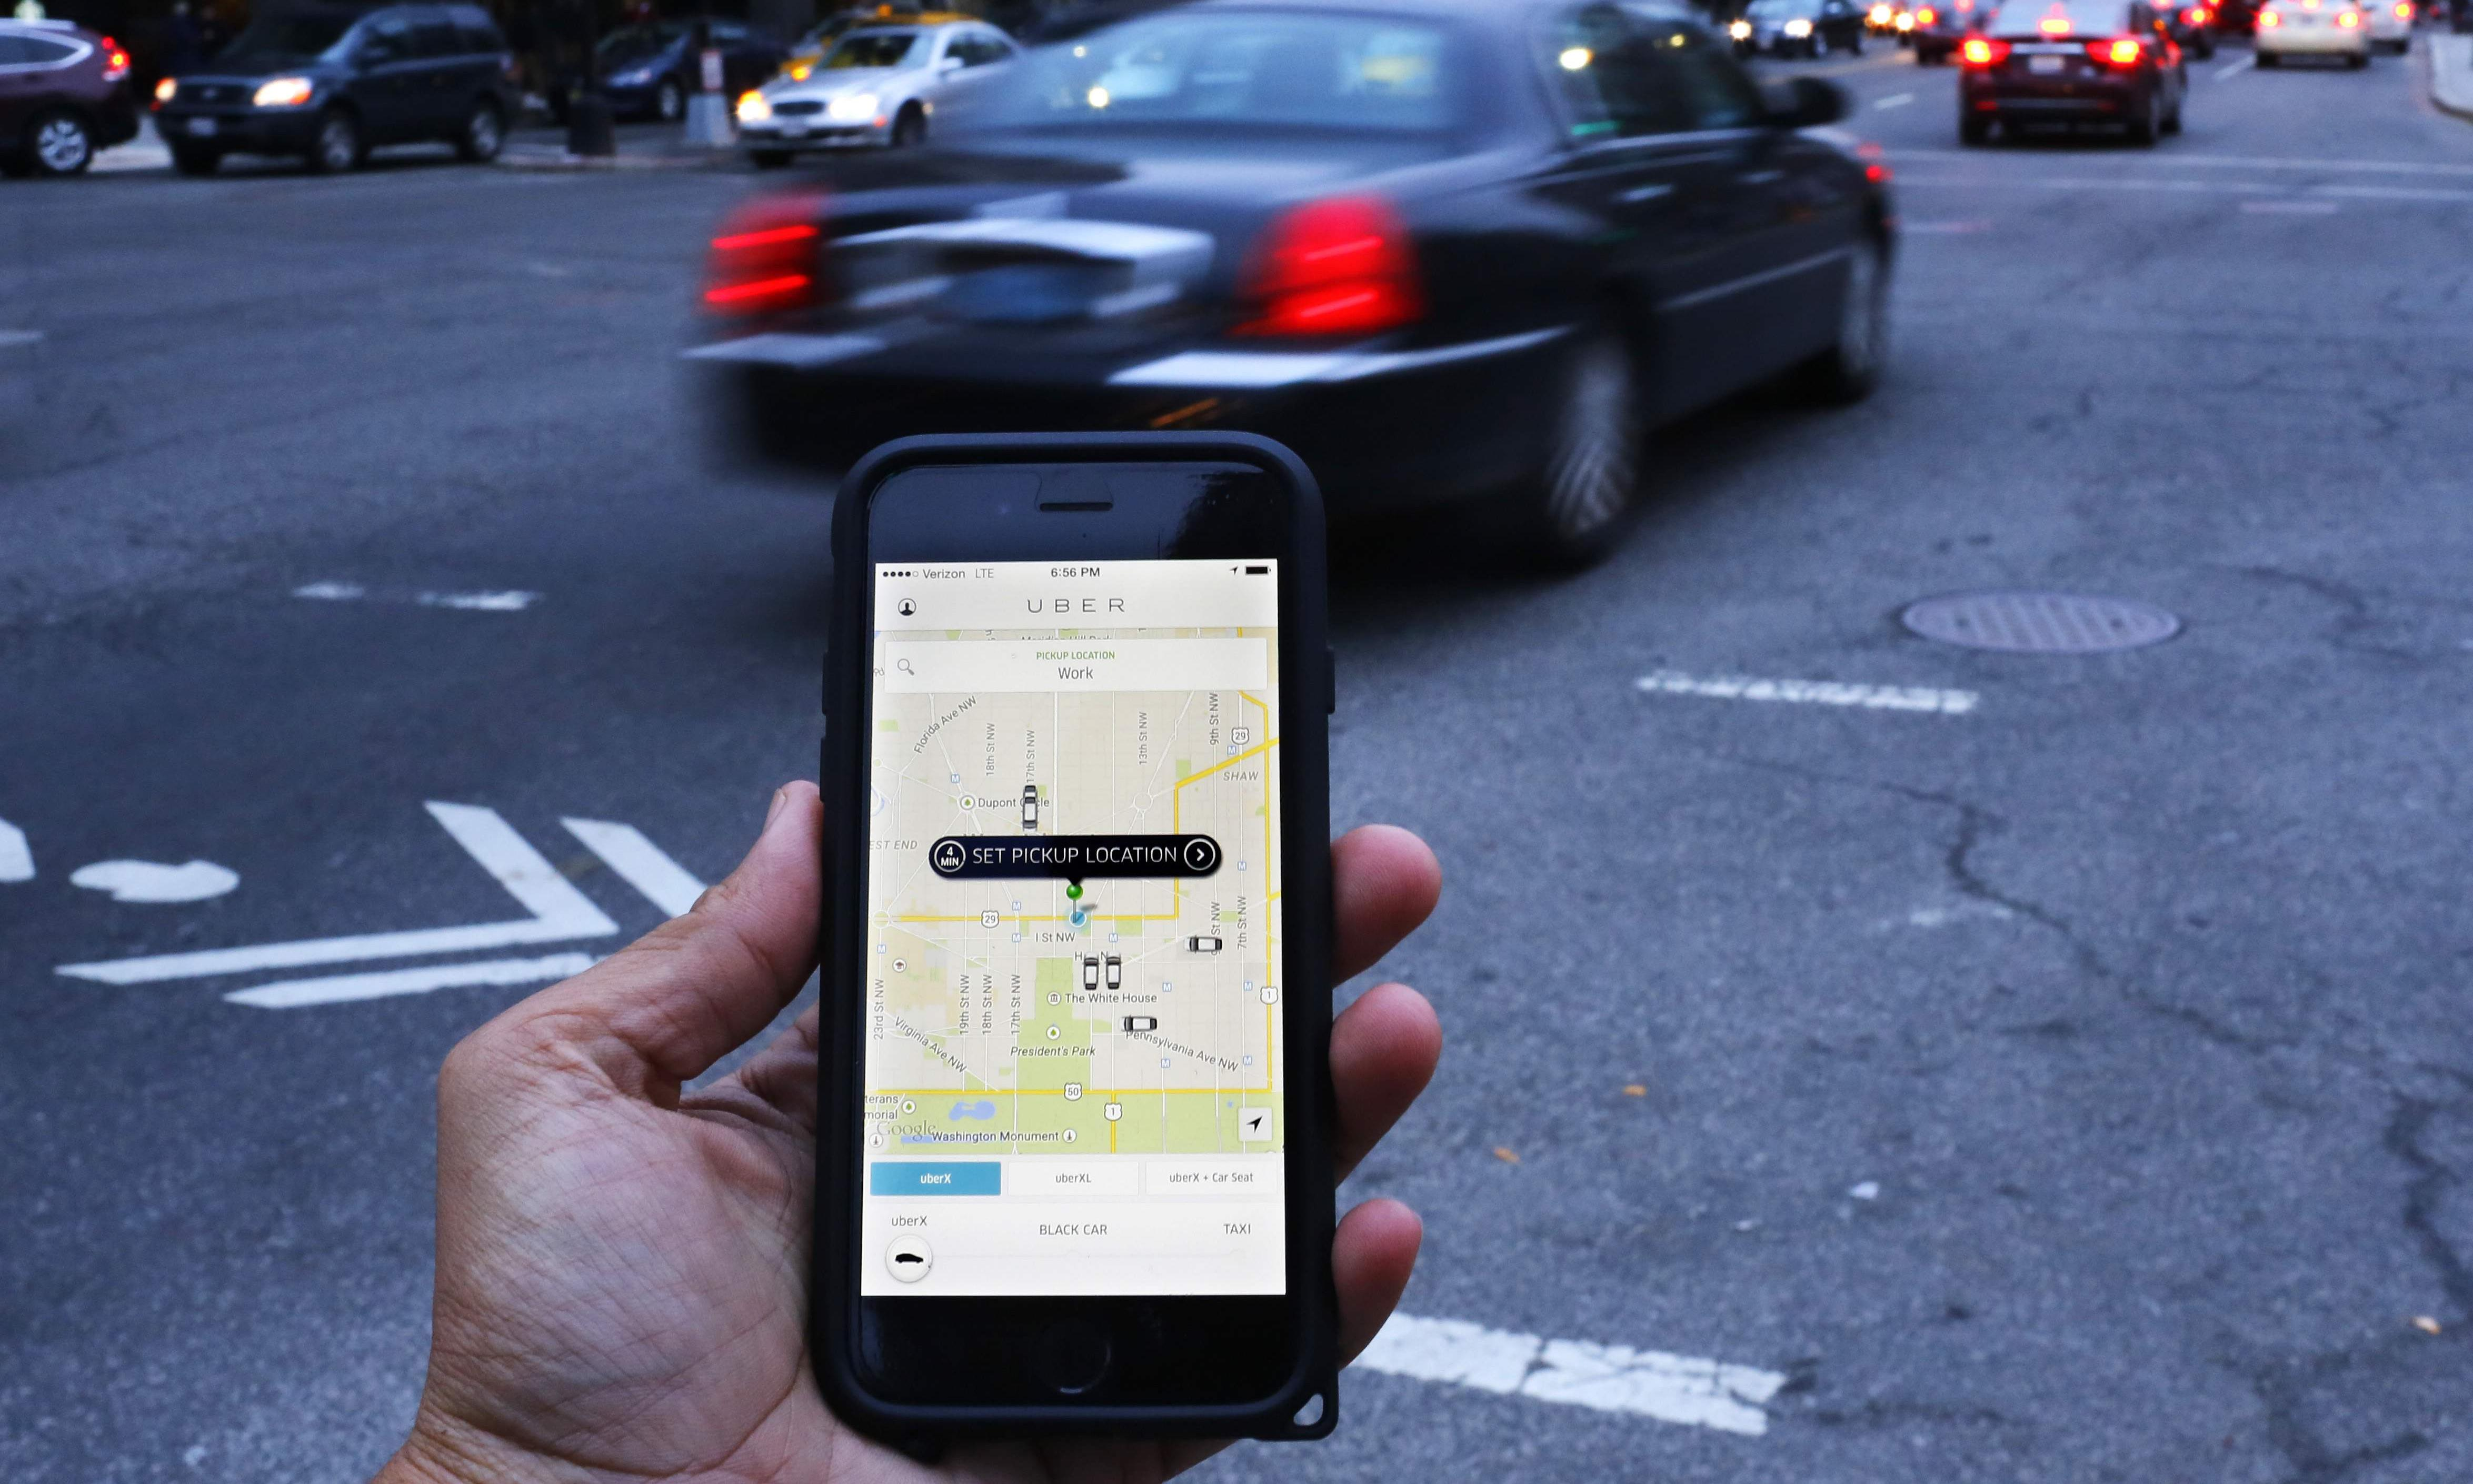 Uber warns it 'may not achieve profitability' as it aims for $100bn valuation